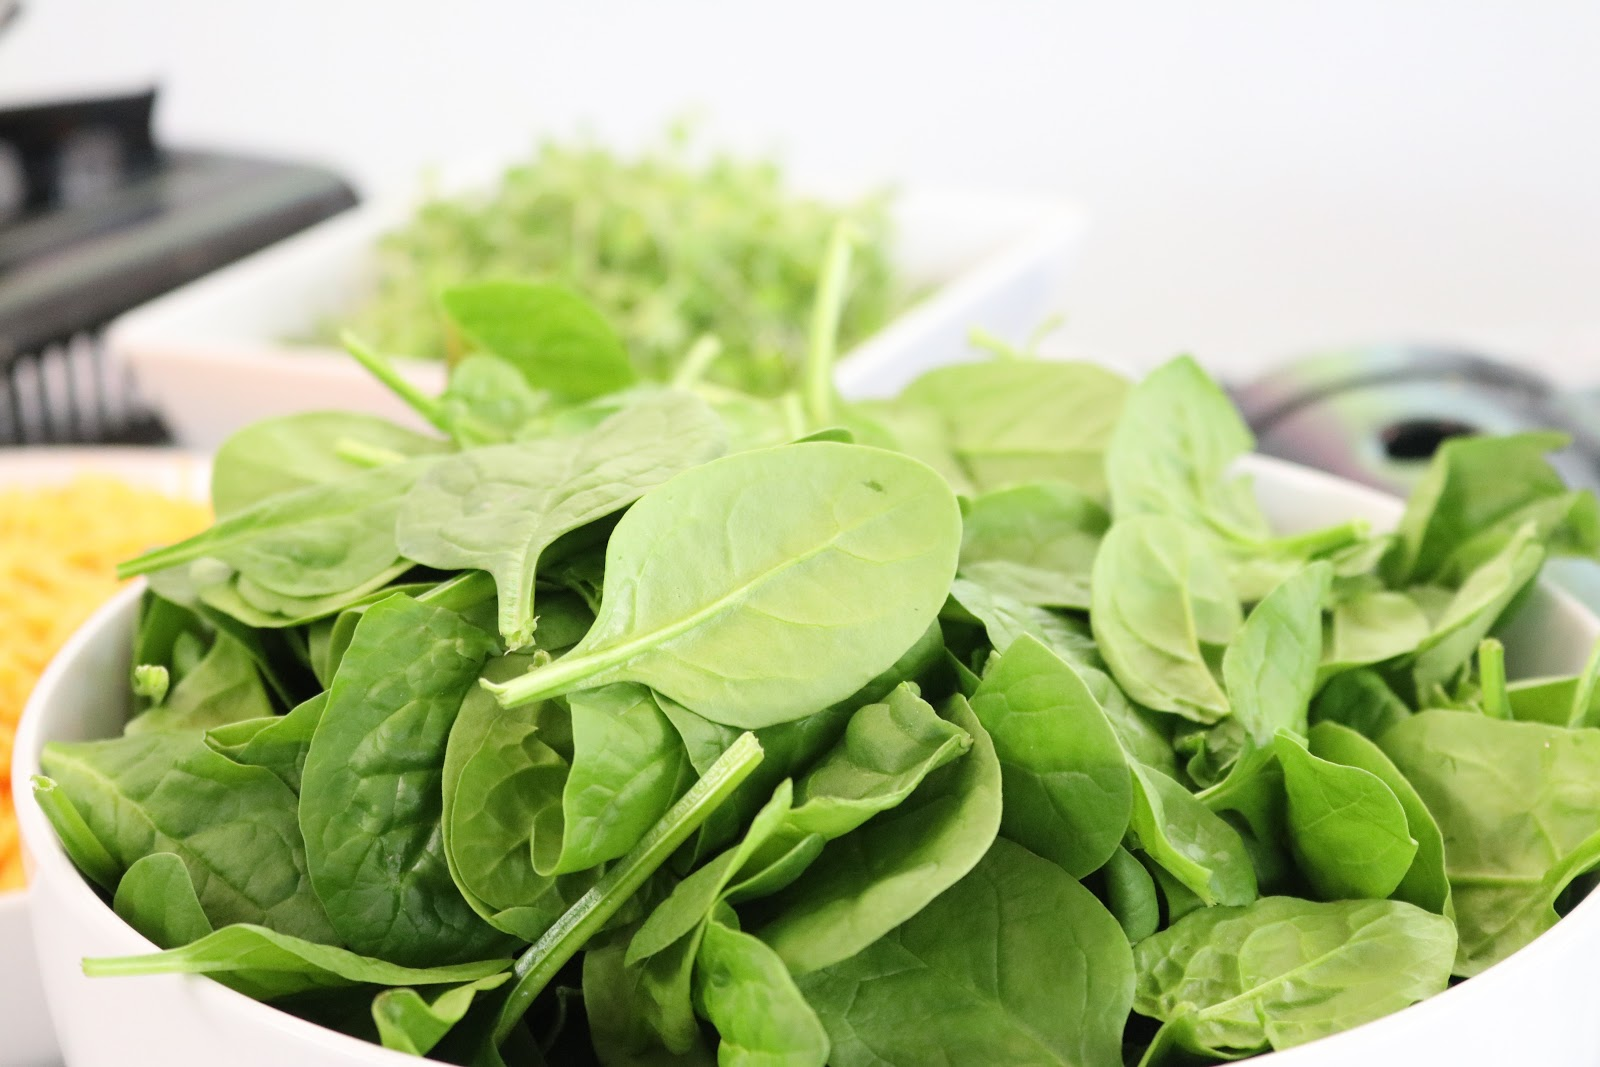 A plate full of spinach. Spinach is good for eyesight